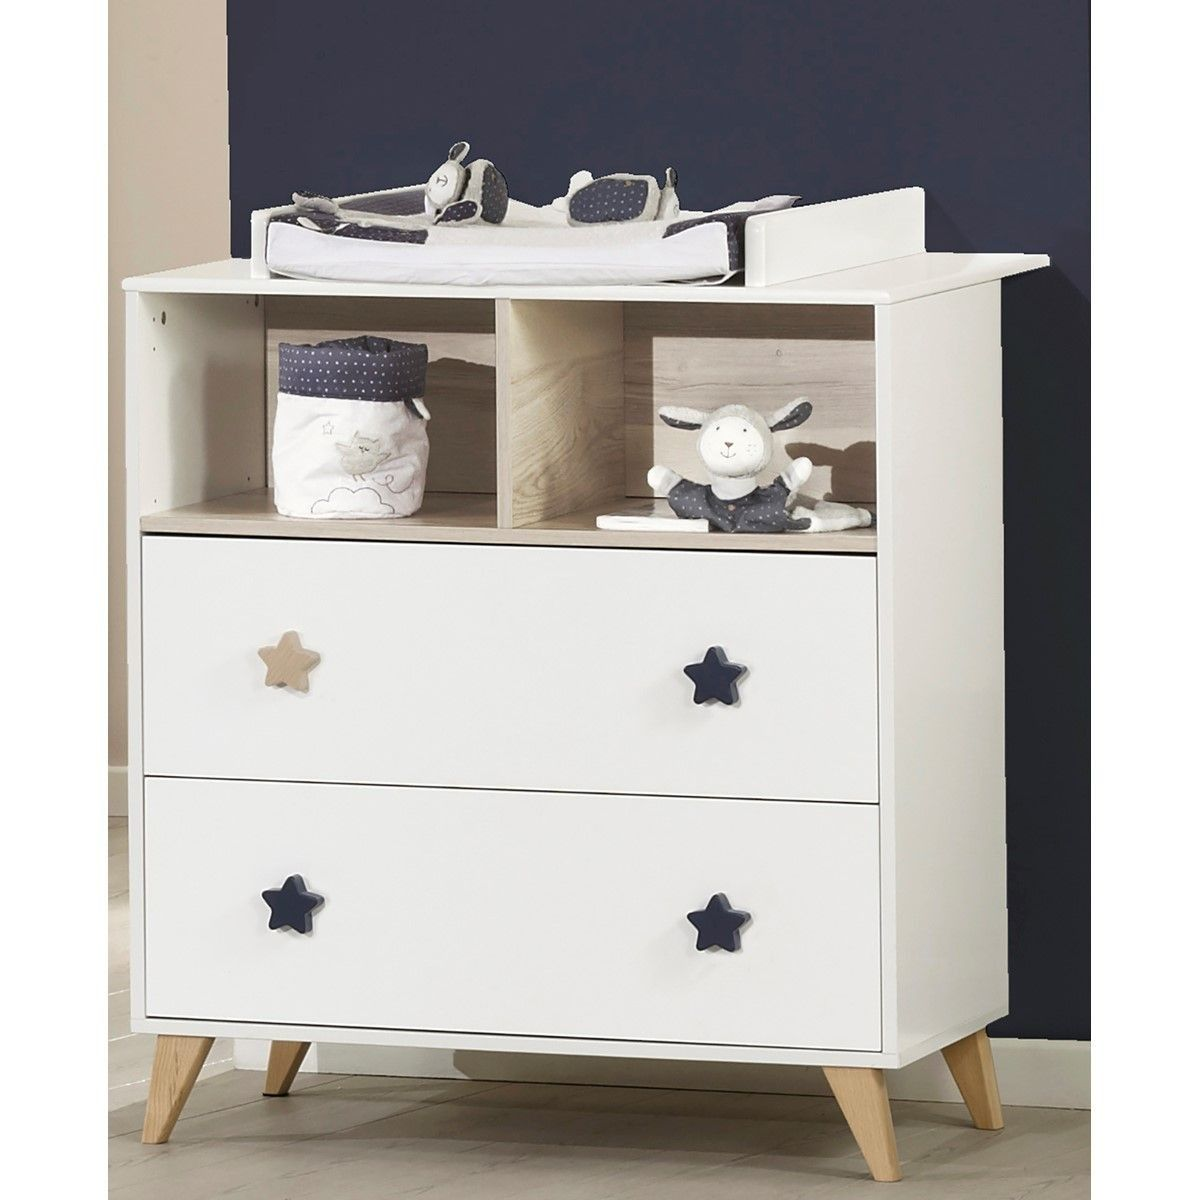 Commode 2 Tiroirs 2 Niches Oslo Boutons Etoiles Sauthon Taille Taille Unique Commode Bebe Commode A Langer Decoration Maison